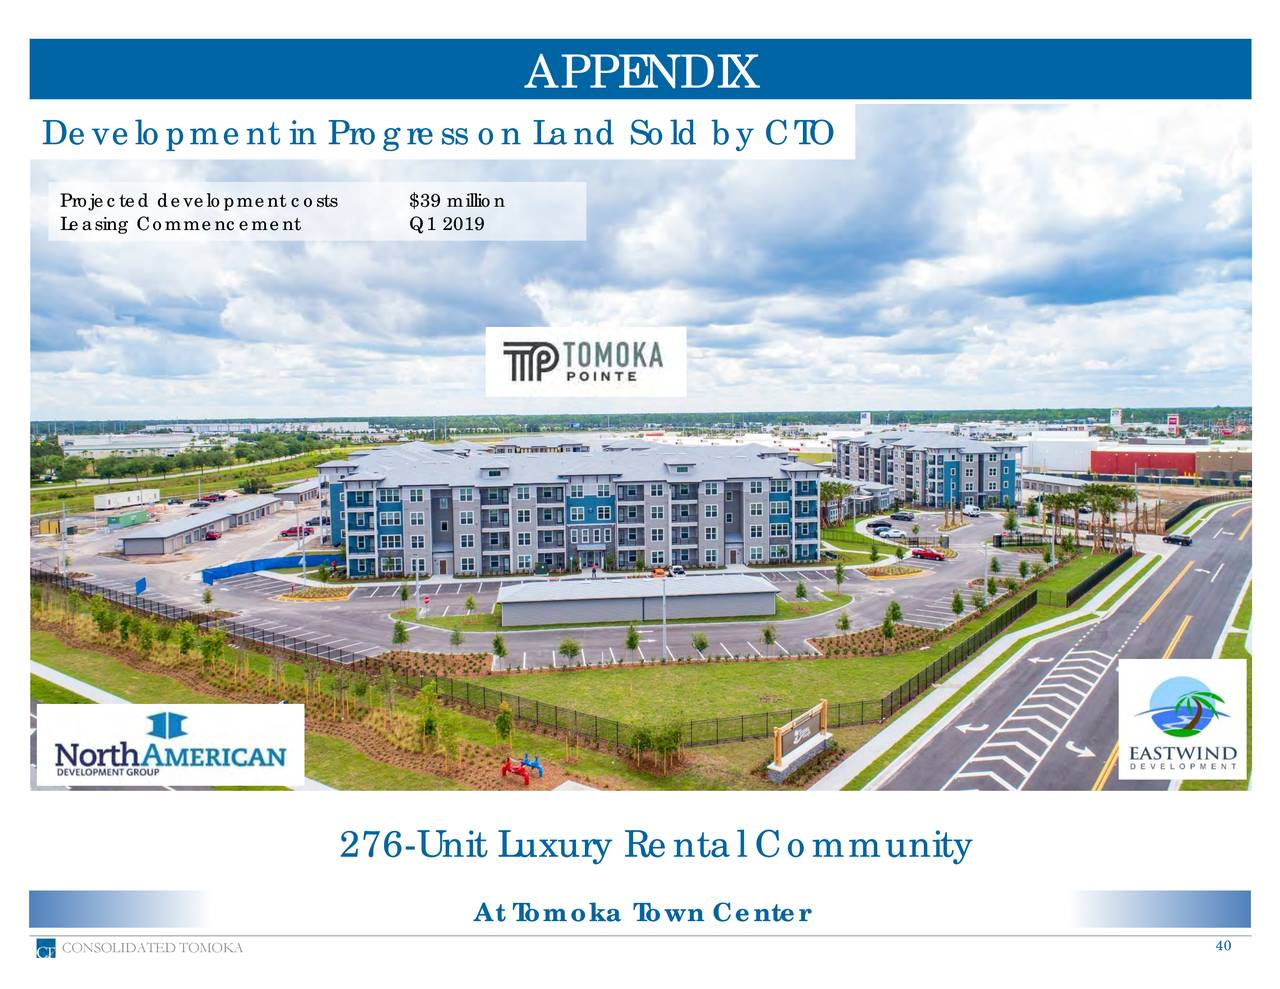 Development in Progress on Land Sold by CTO Projected development cost$39 million Leasing Commencement Q1 2019 276-Unit Luxury Rental Community At Tomoka Town Center CONSOLIDATED TOMOKA 40